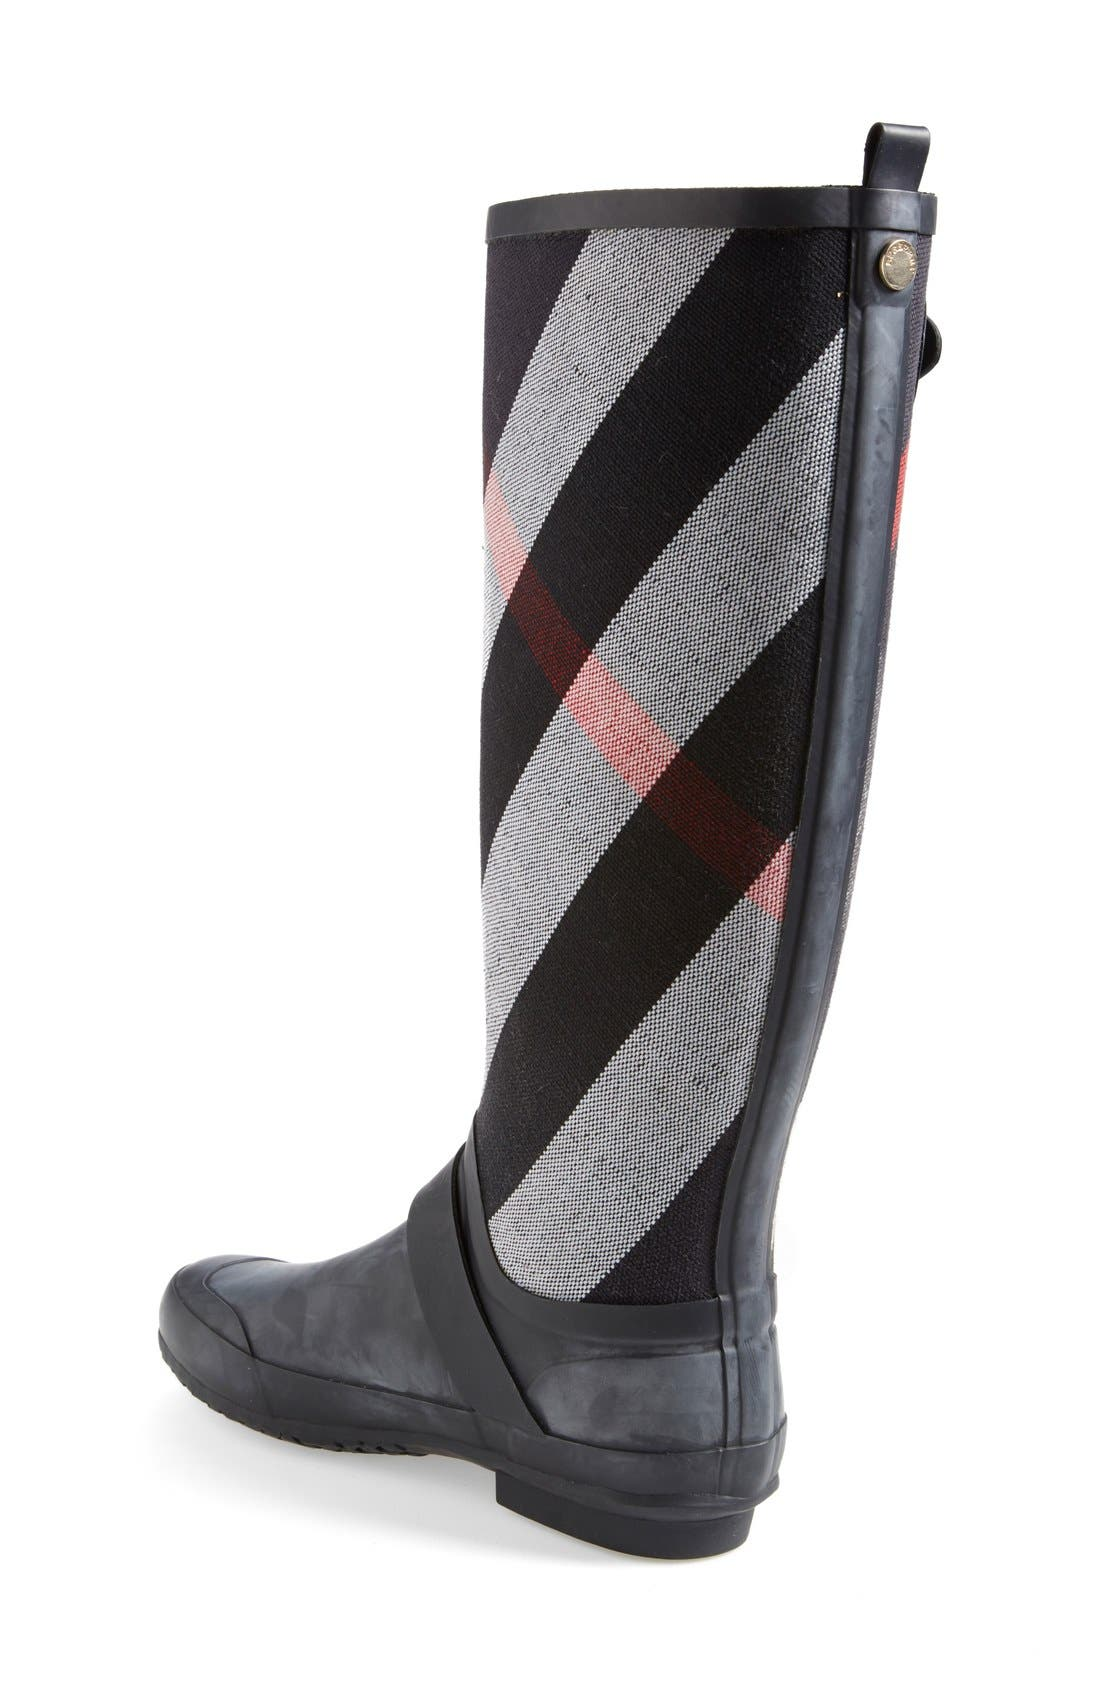 Alternate Image 2  - Burberry 'Birkback' Rain Boot (Women) (Wide Calf)